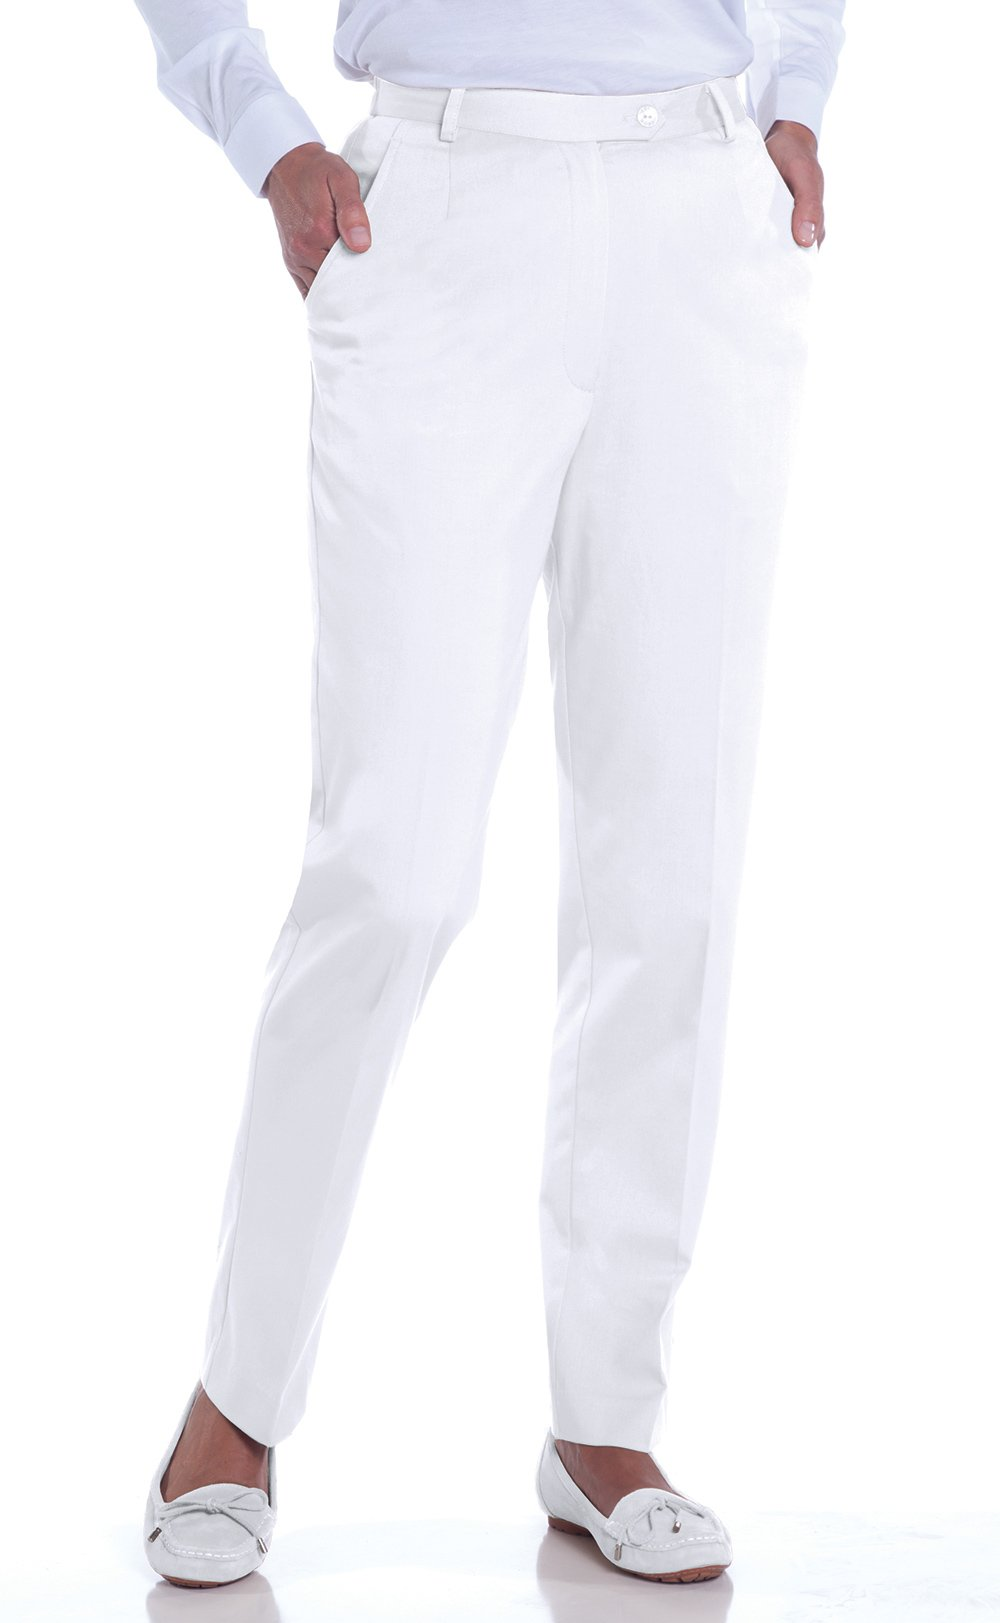 Stretch Twill Flat Front Pants</br>White 000 - Leonlevin